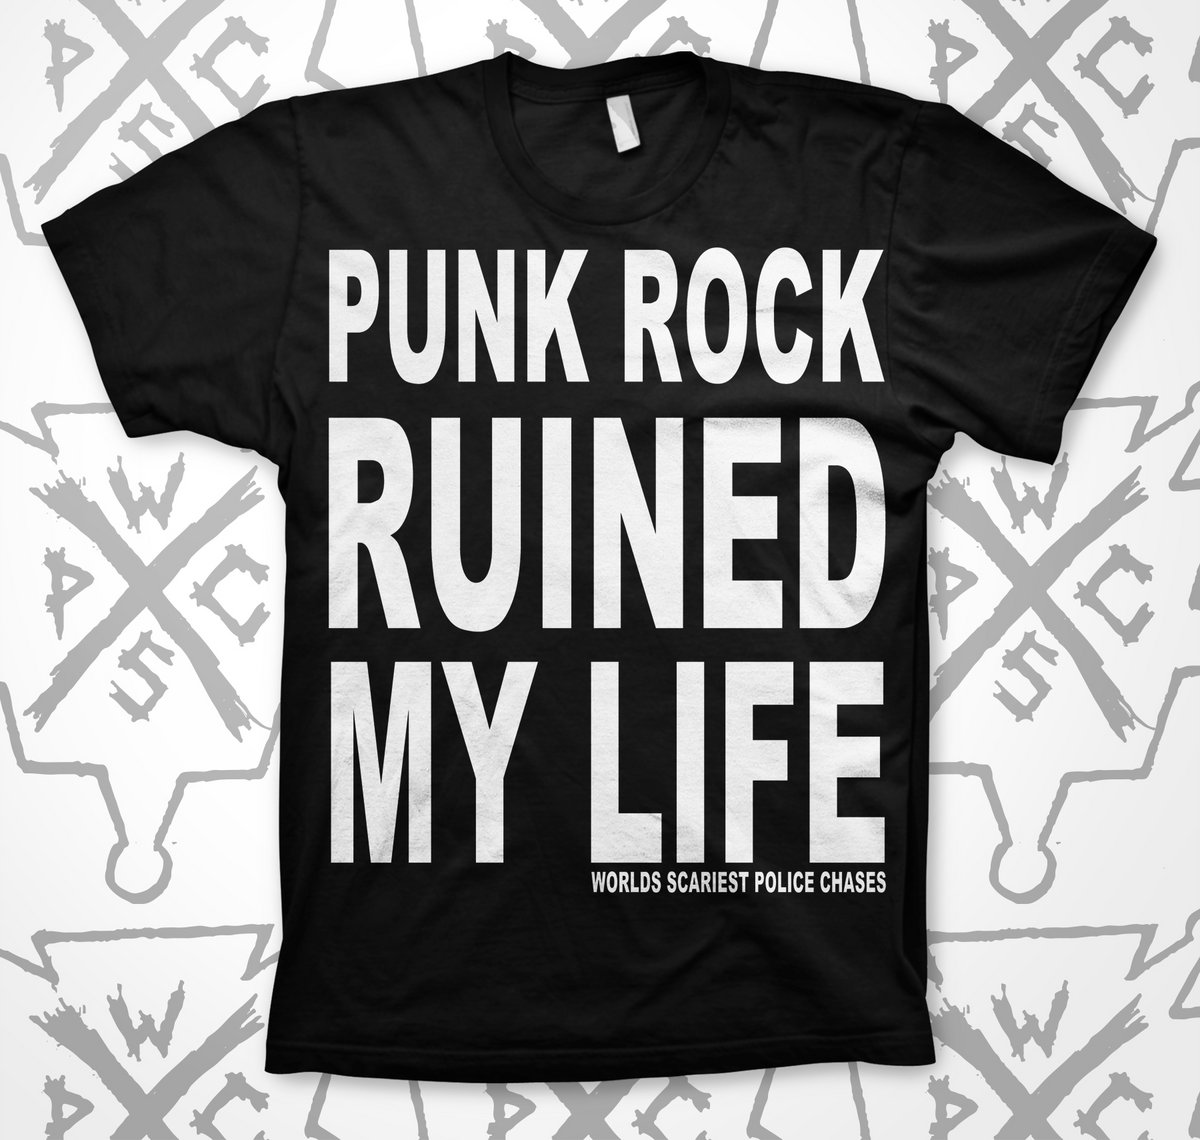 punk rock ruined my life shirt - worlds scariest police